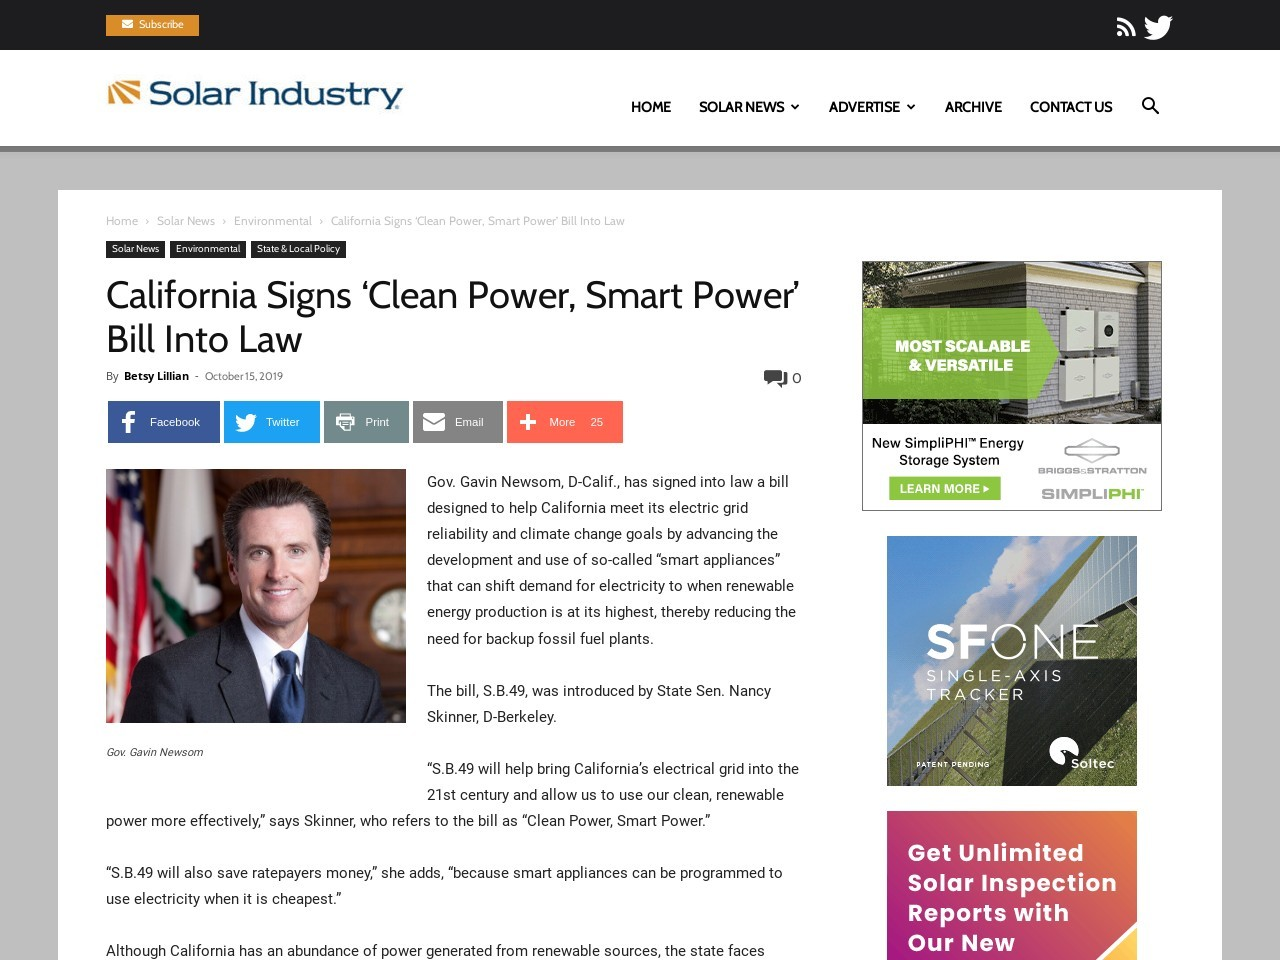 California Signs 'Clean Power, Smart Power' Bill Into Law